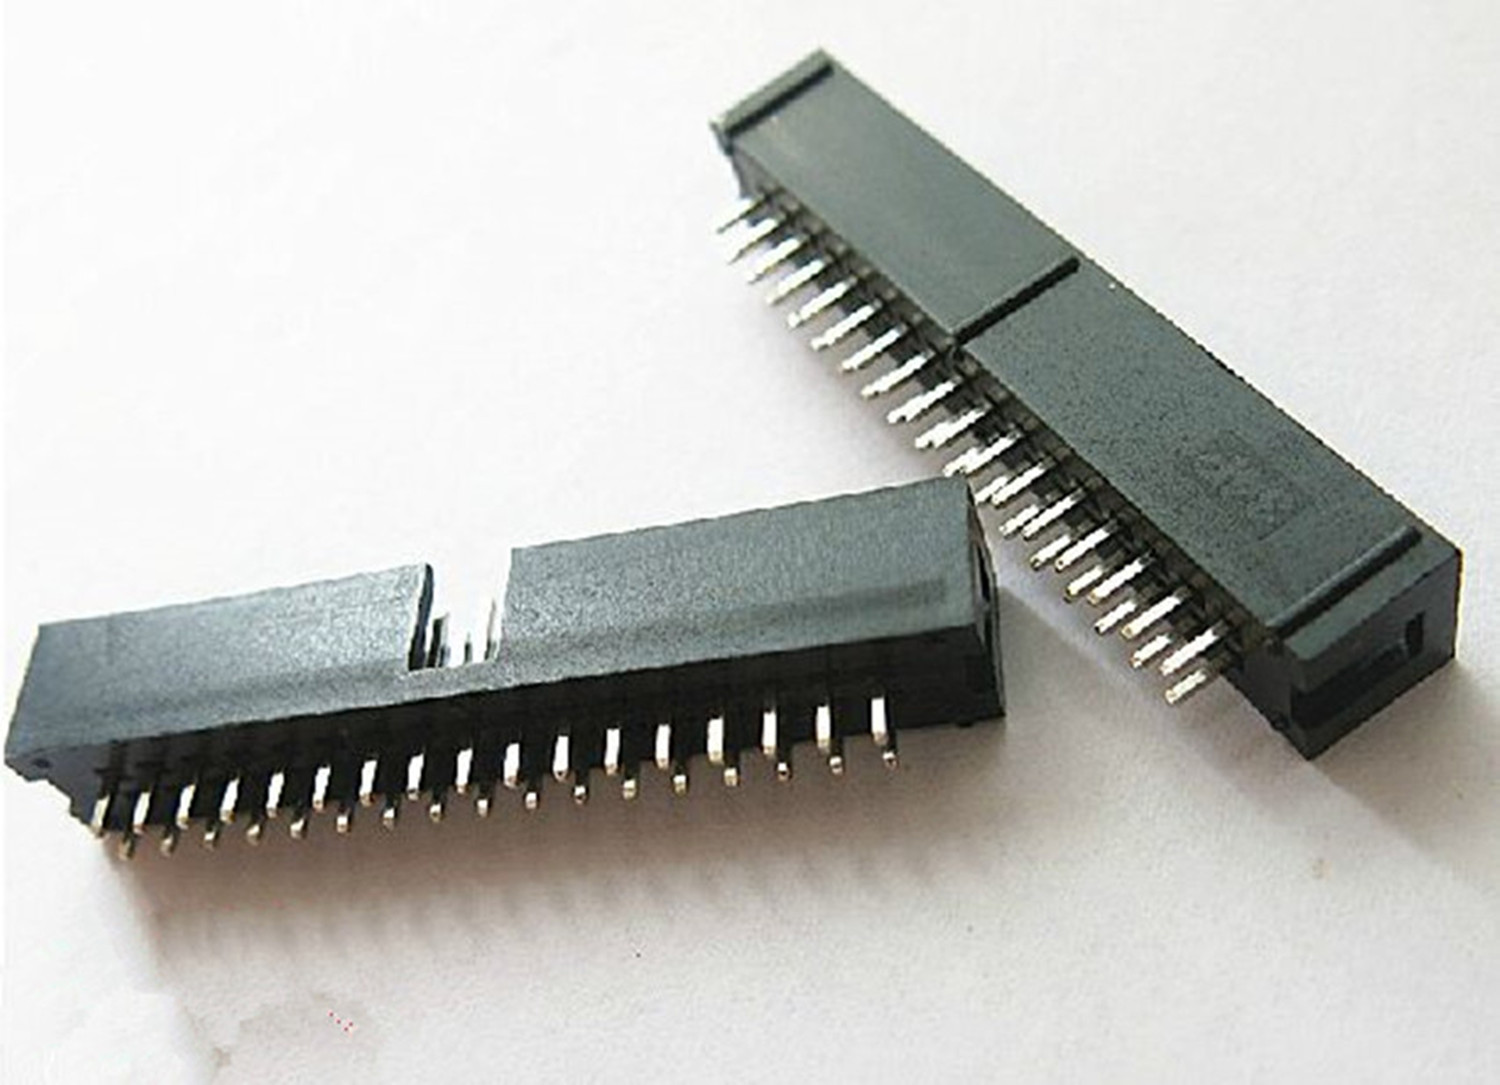 10PCS DC3 34 Pin 2x17Pin Double Row Pitch 2.54mm Double-spaced Straight Pin Male IDC Socket Box Header Connector High Quality